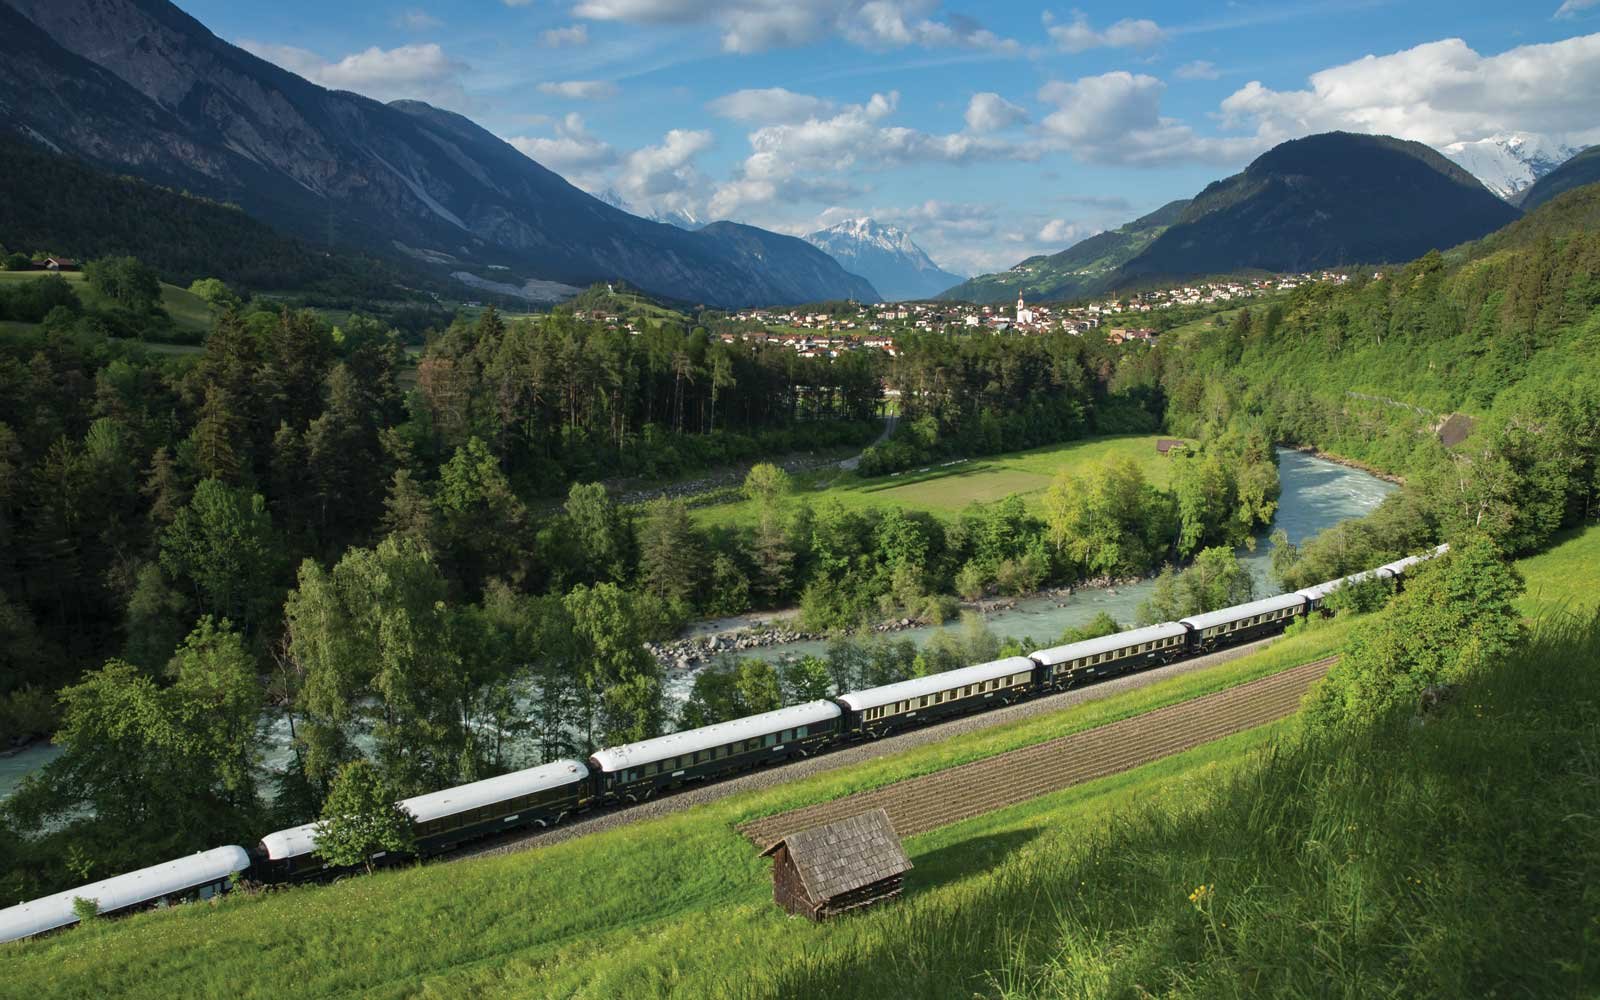 What It's Like to Travel on the Orient Express